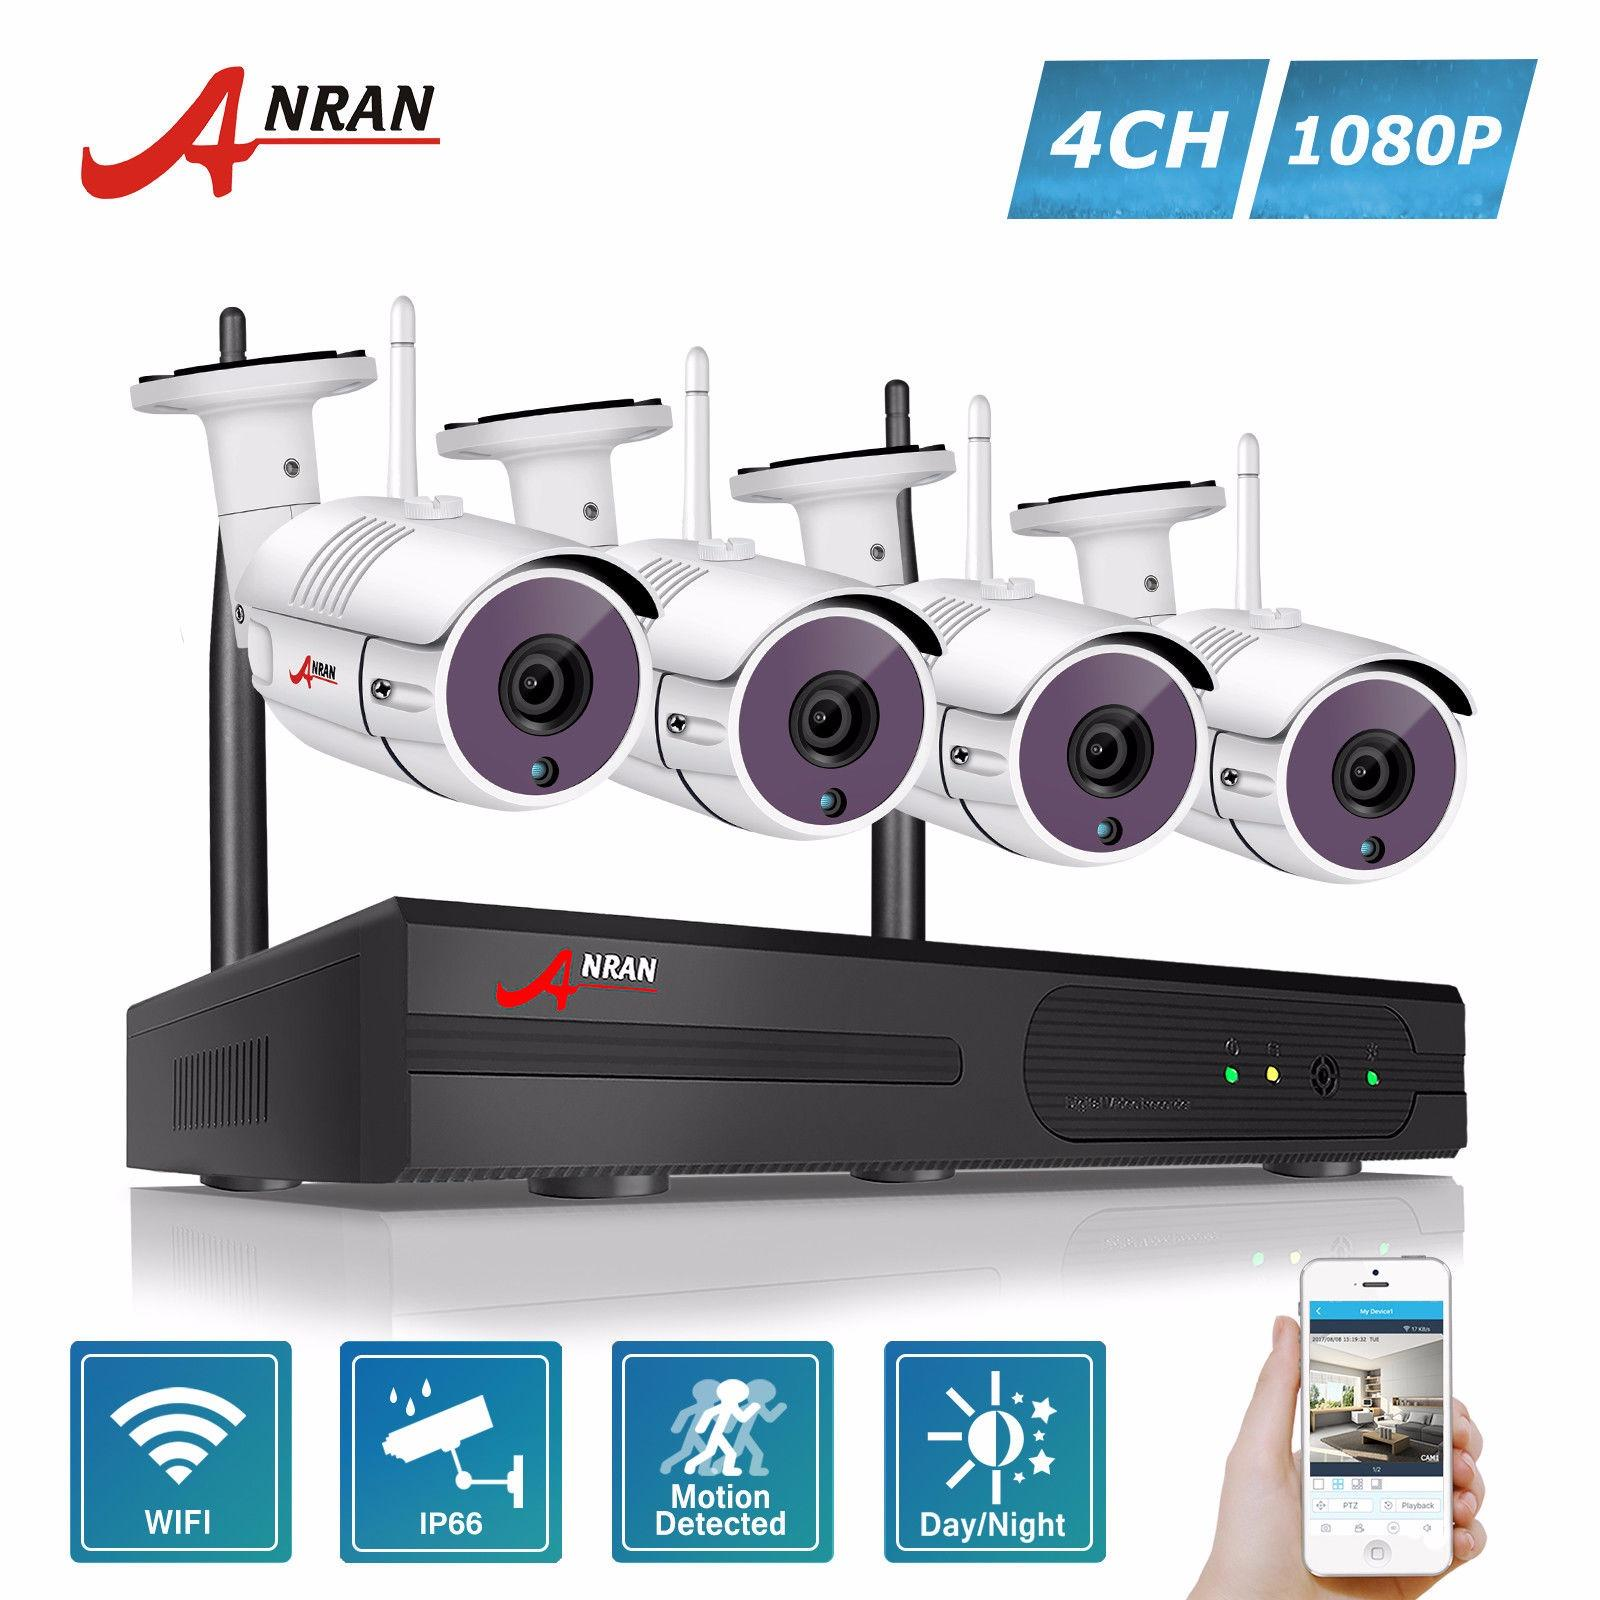 Beli Anran 4Ch Wireless Nvr Security Cctv System P2P 1080P Hd Outdoor Vandalproof Wfi Ip Camera Cicilan